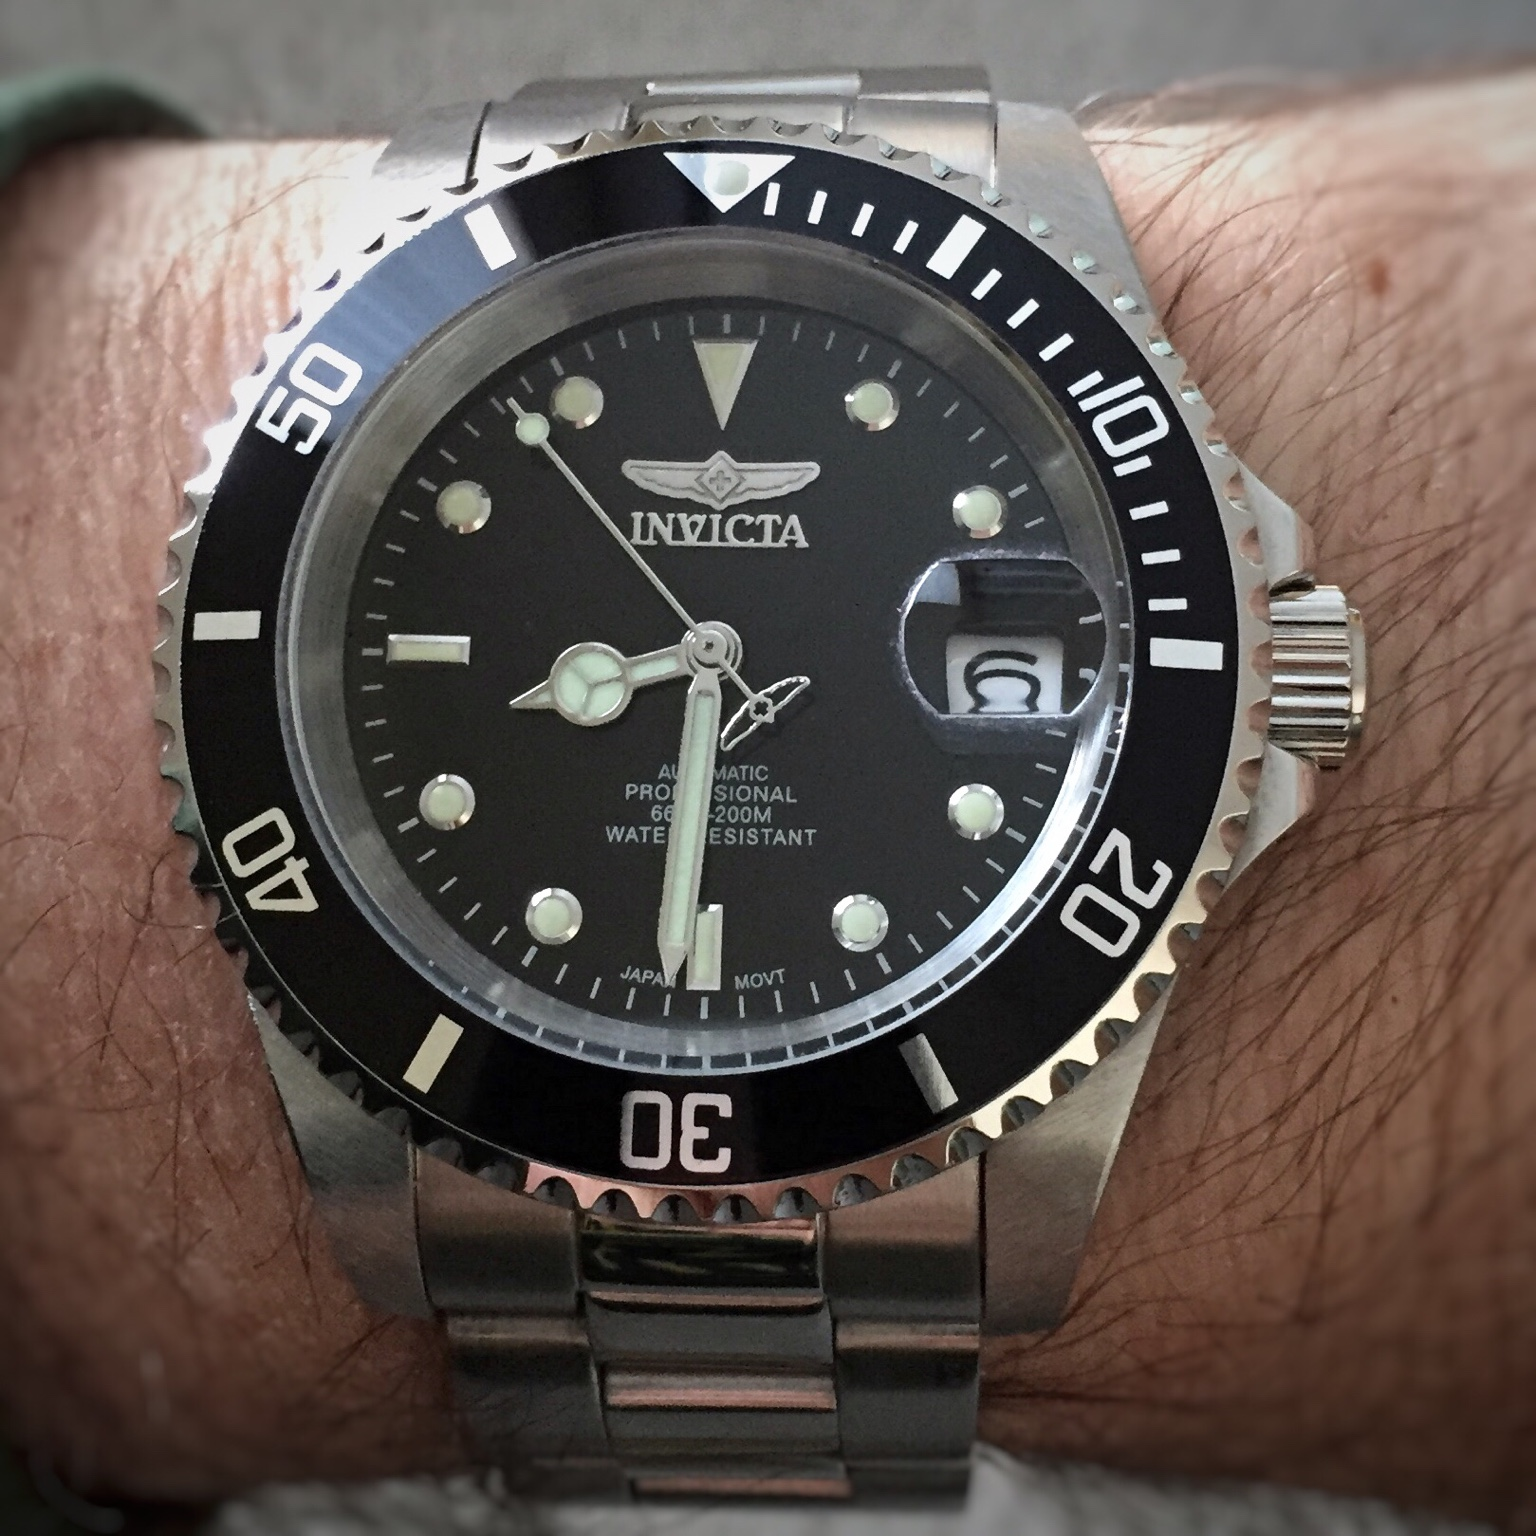 Should I get the Invicta Pro diver? Is the quality any ...